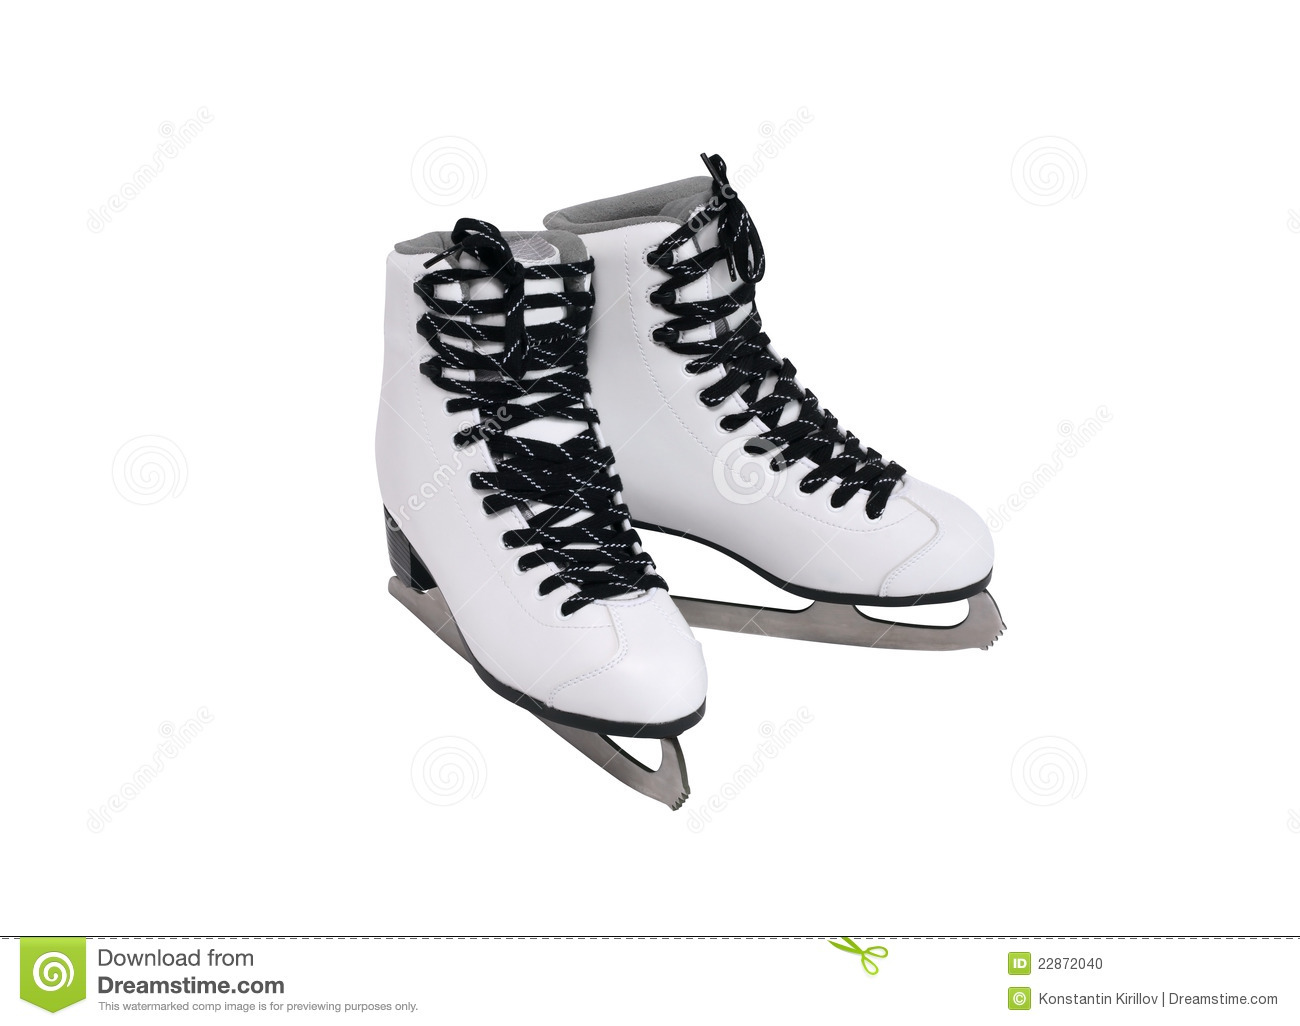 New white female ice skating shoes. Isolated on white with clipping